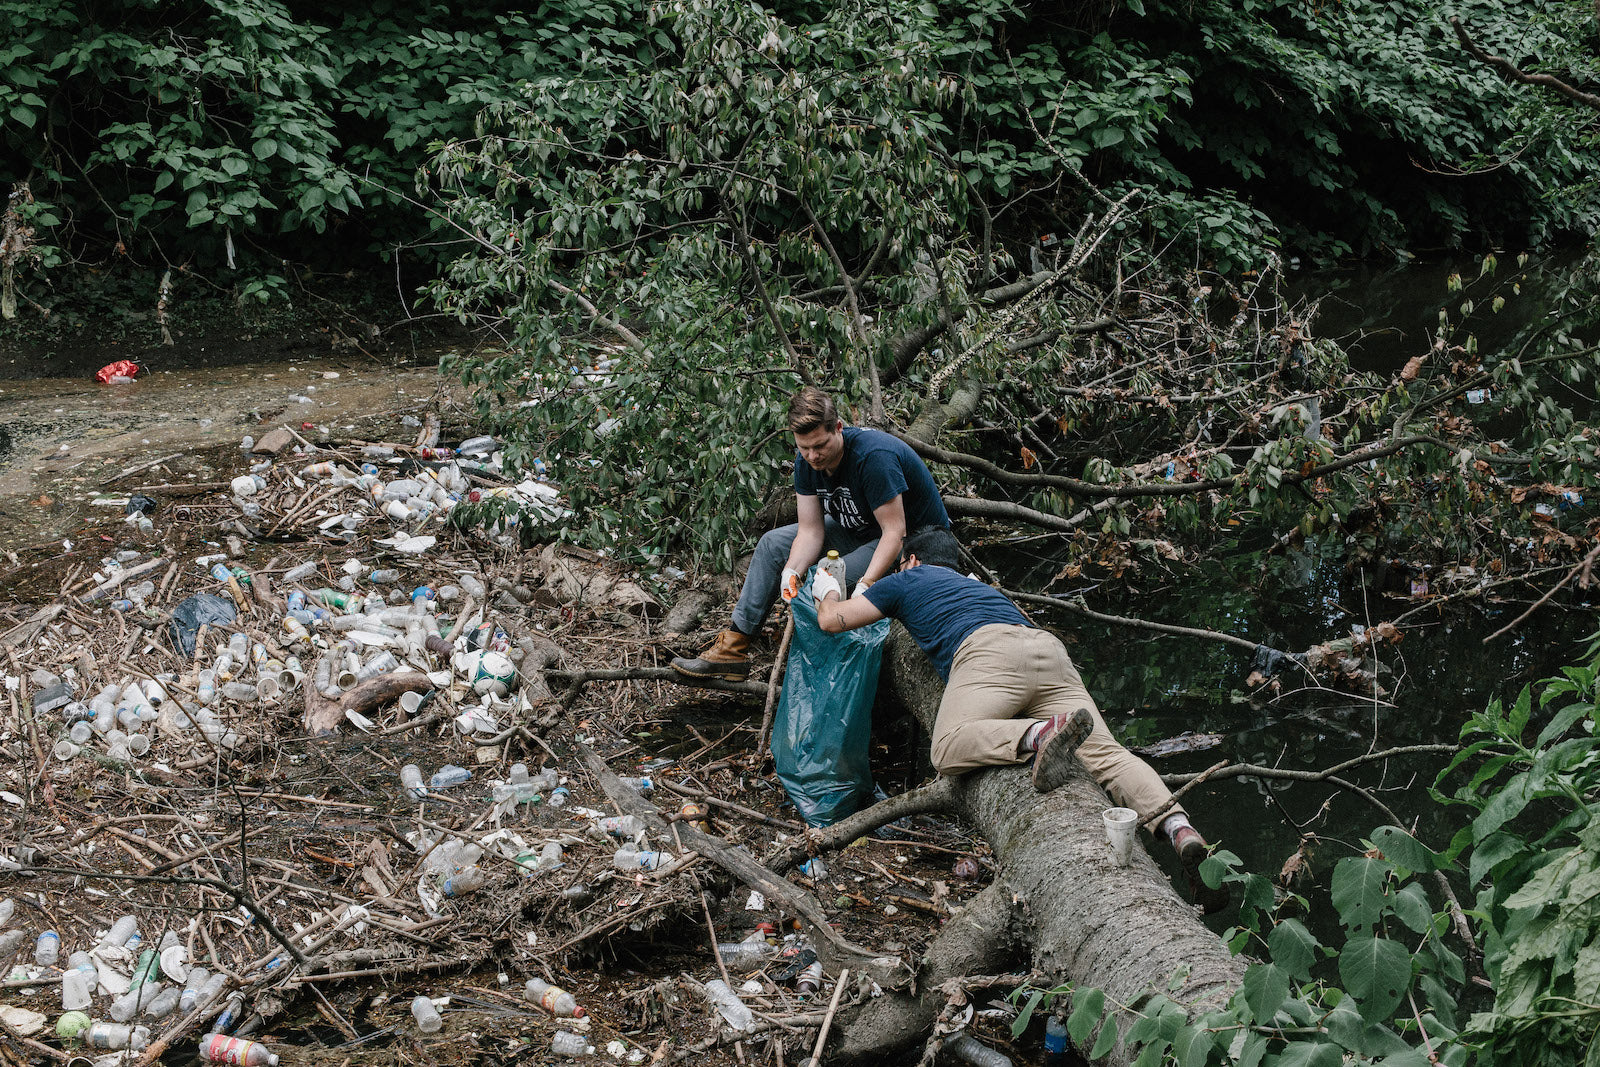 United By Blue co-founders Bryan and Mike collect trash from a riverside in their home city of Philadelphia.